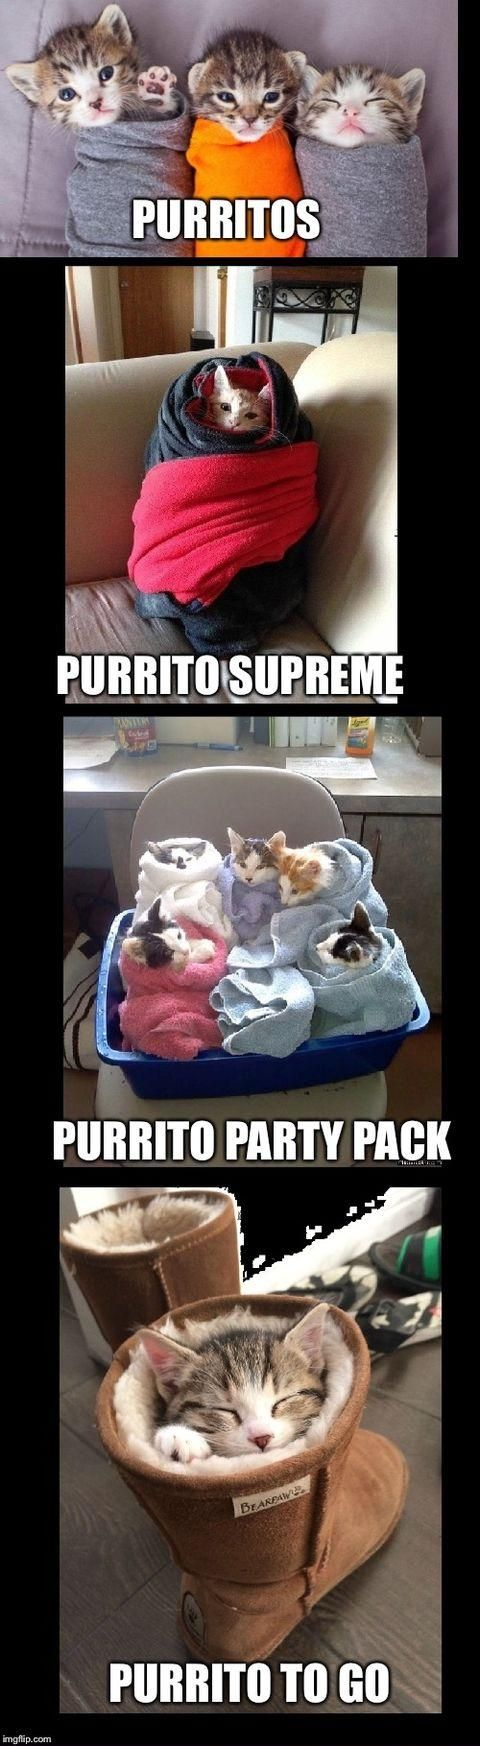 619 points • 278 comments - The purrito. - IWSMT has amazing images, videos and anectodes to waste your time on